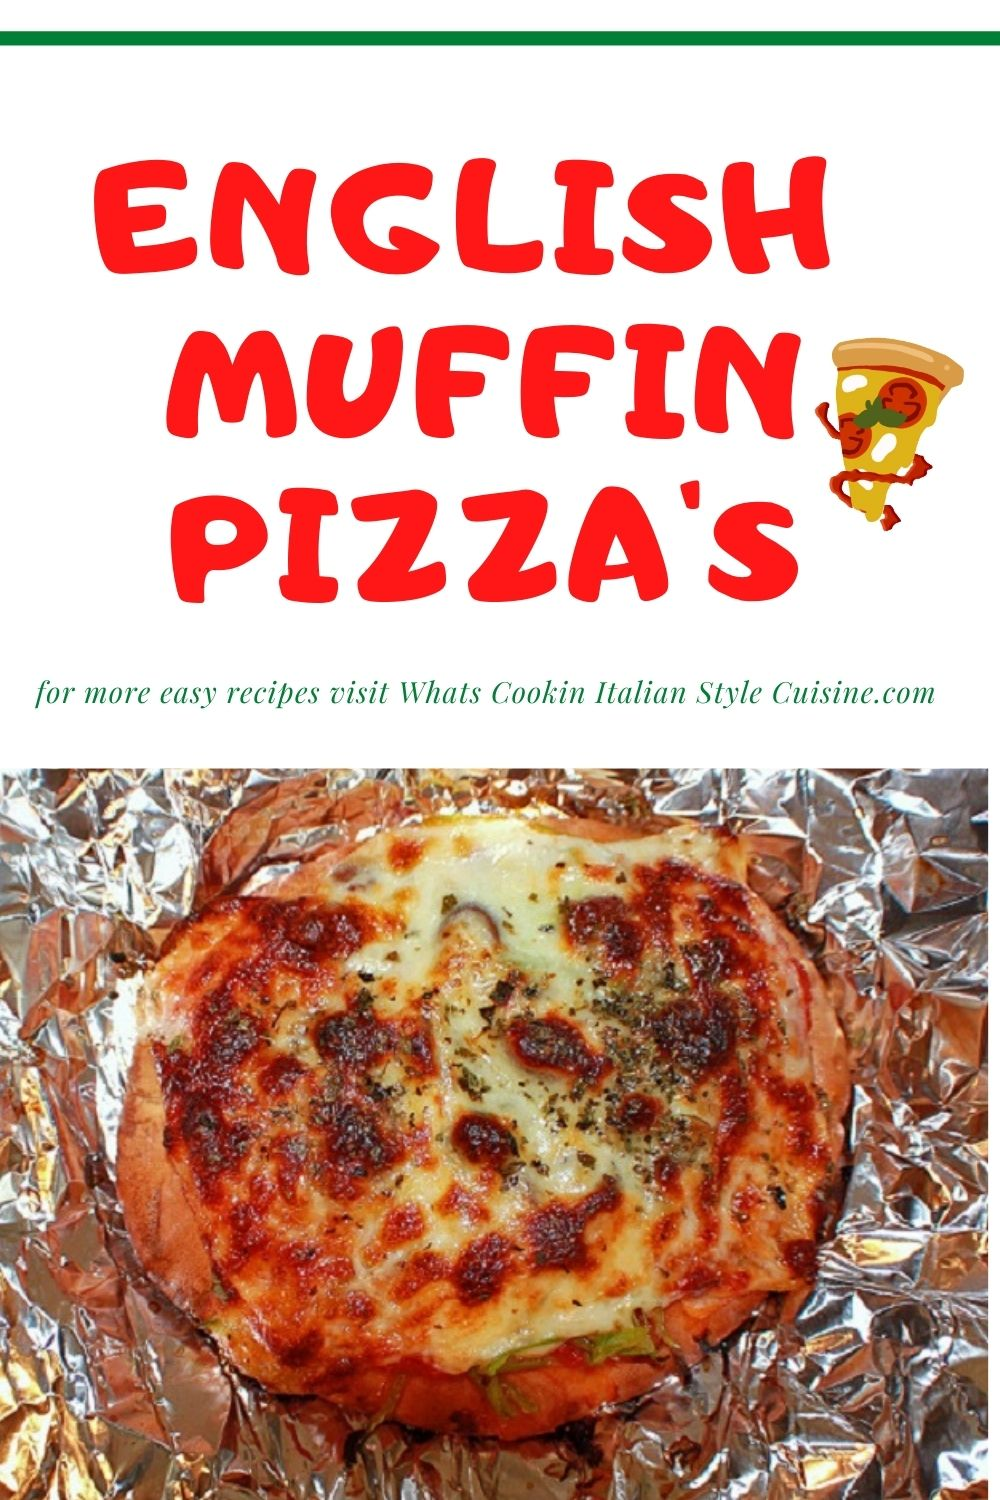 this is a pin on how to find English Muffin pizza